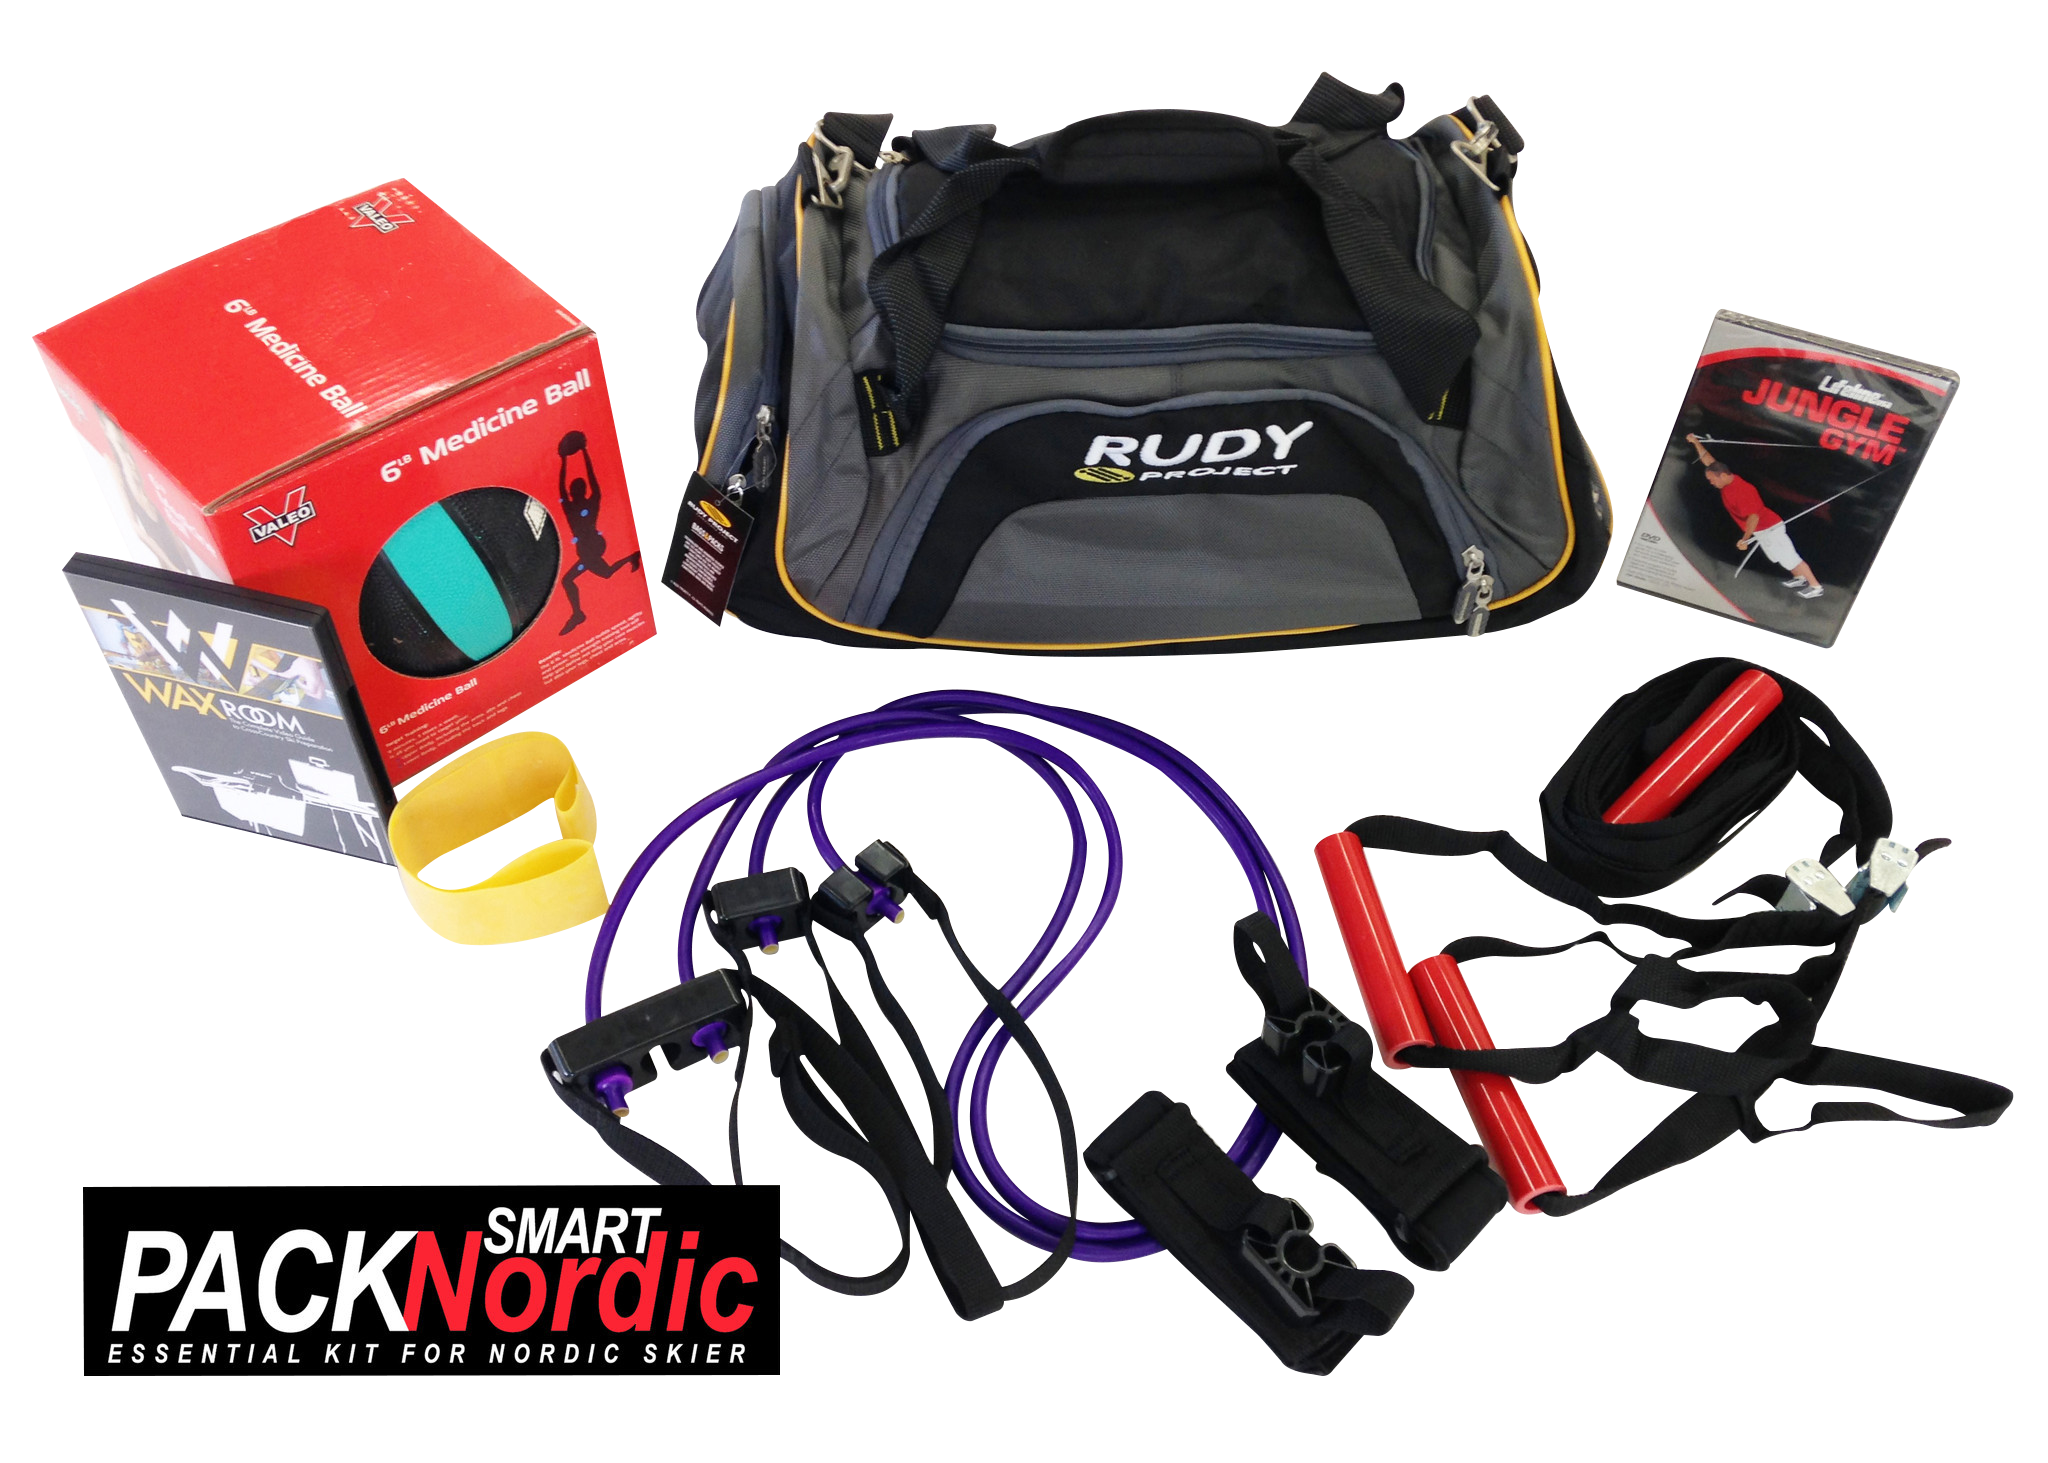 Nordic Smart Pack - Essential Kit for Nordic Skier